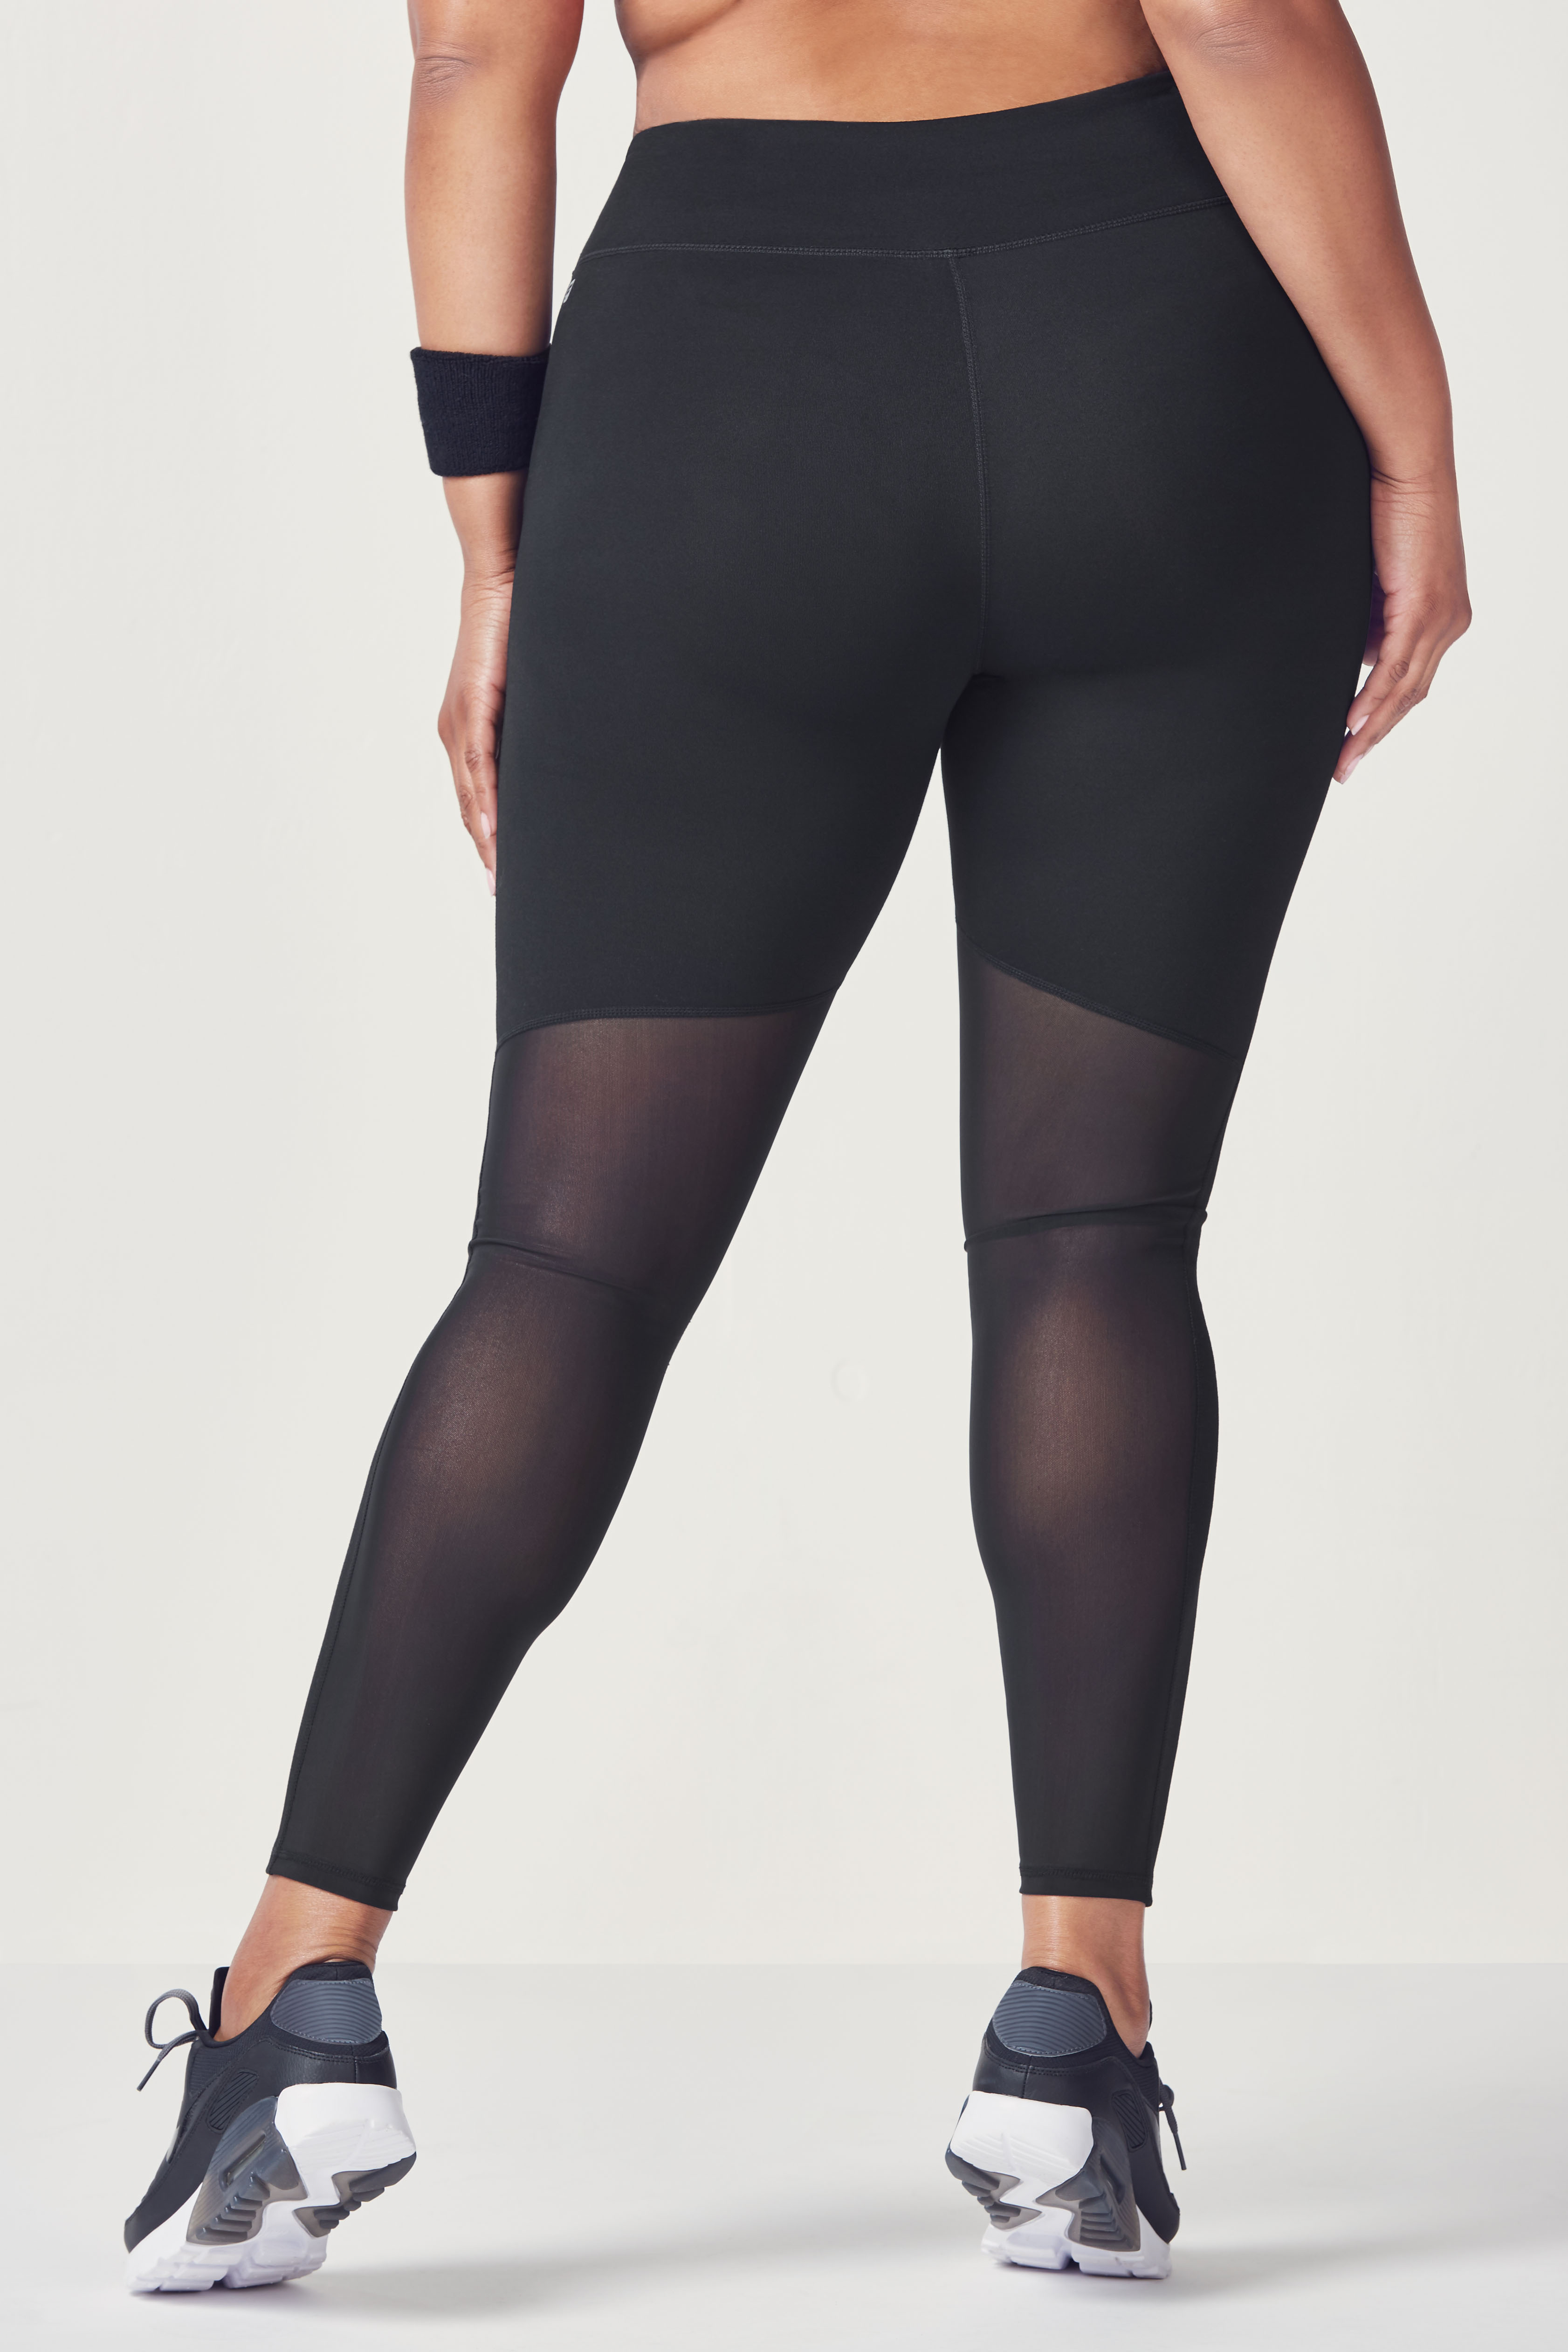 1c3a24efaeb27 Welcome back to Fabletics!